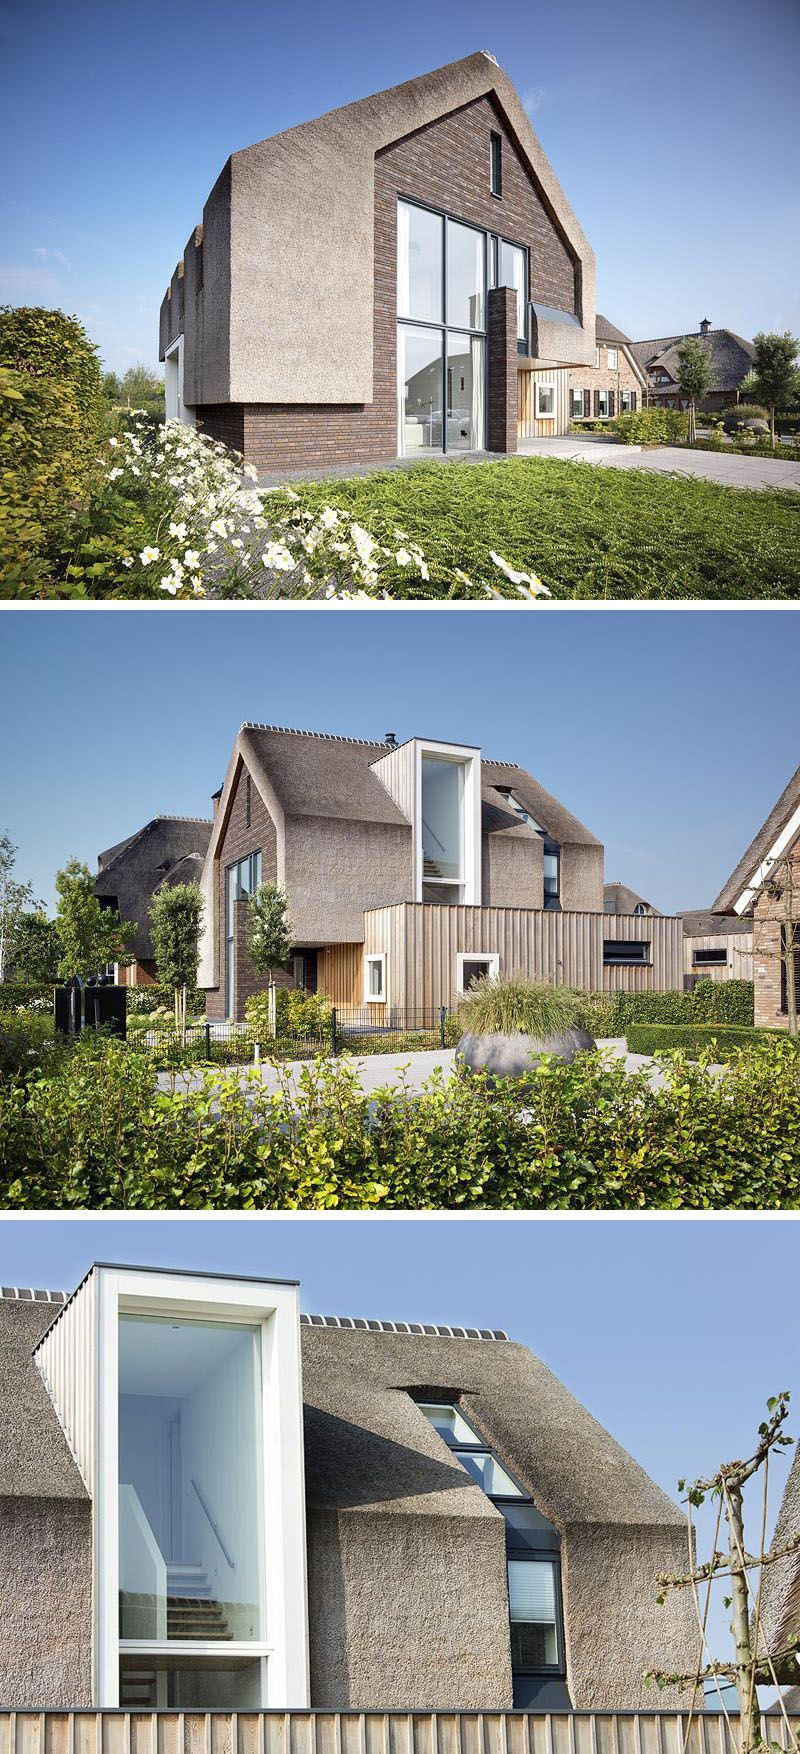 12 Examples Of Modern Houses And Buildings That Have A Thatched Roof Roof Design Architecture House Roof Architecture